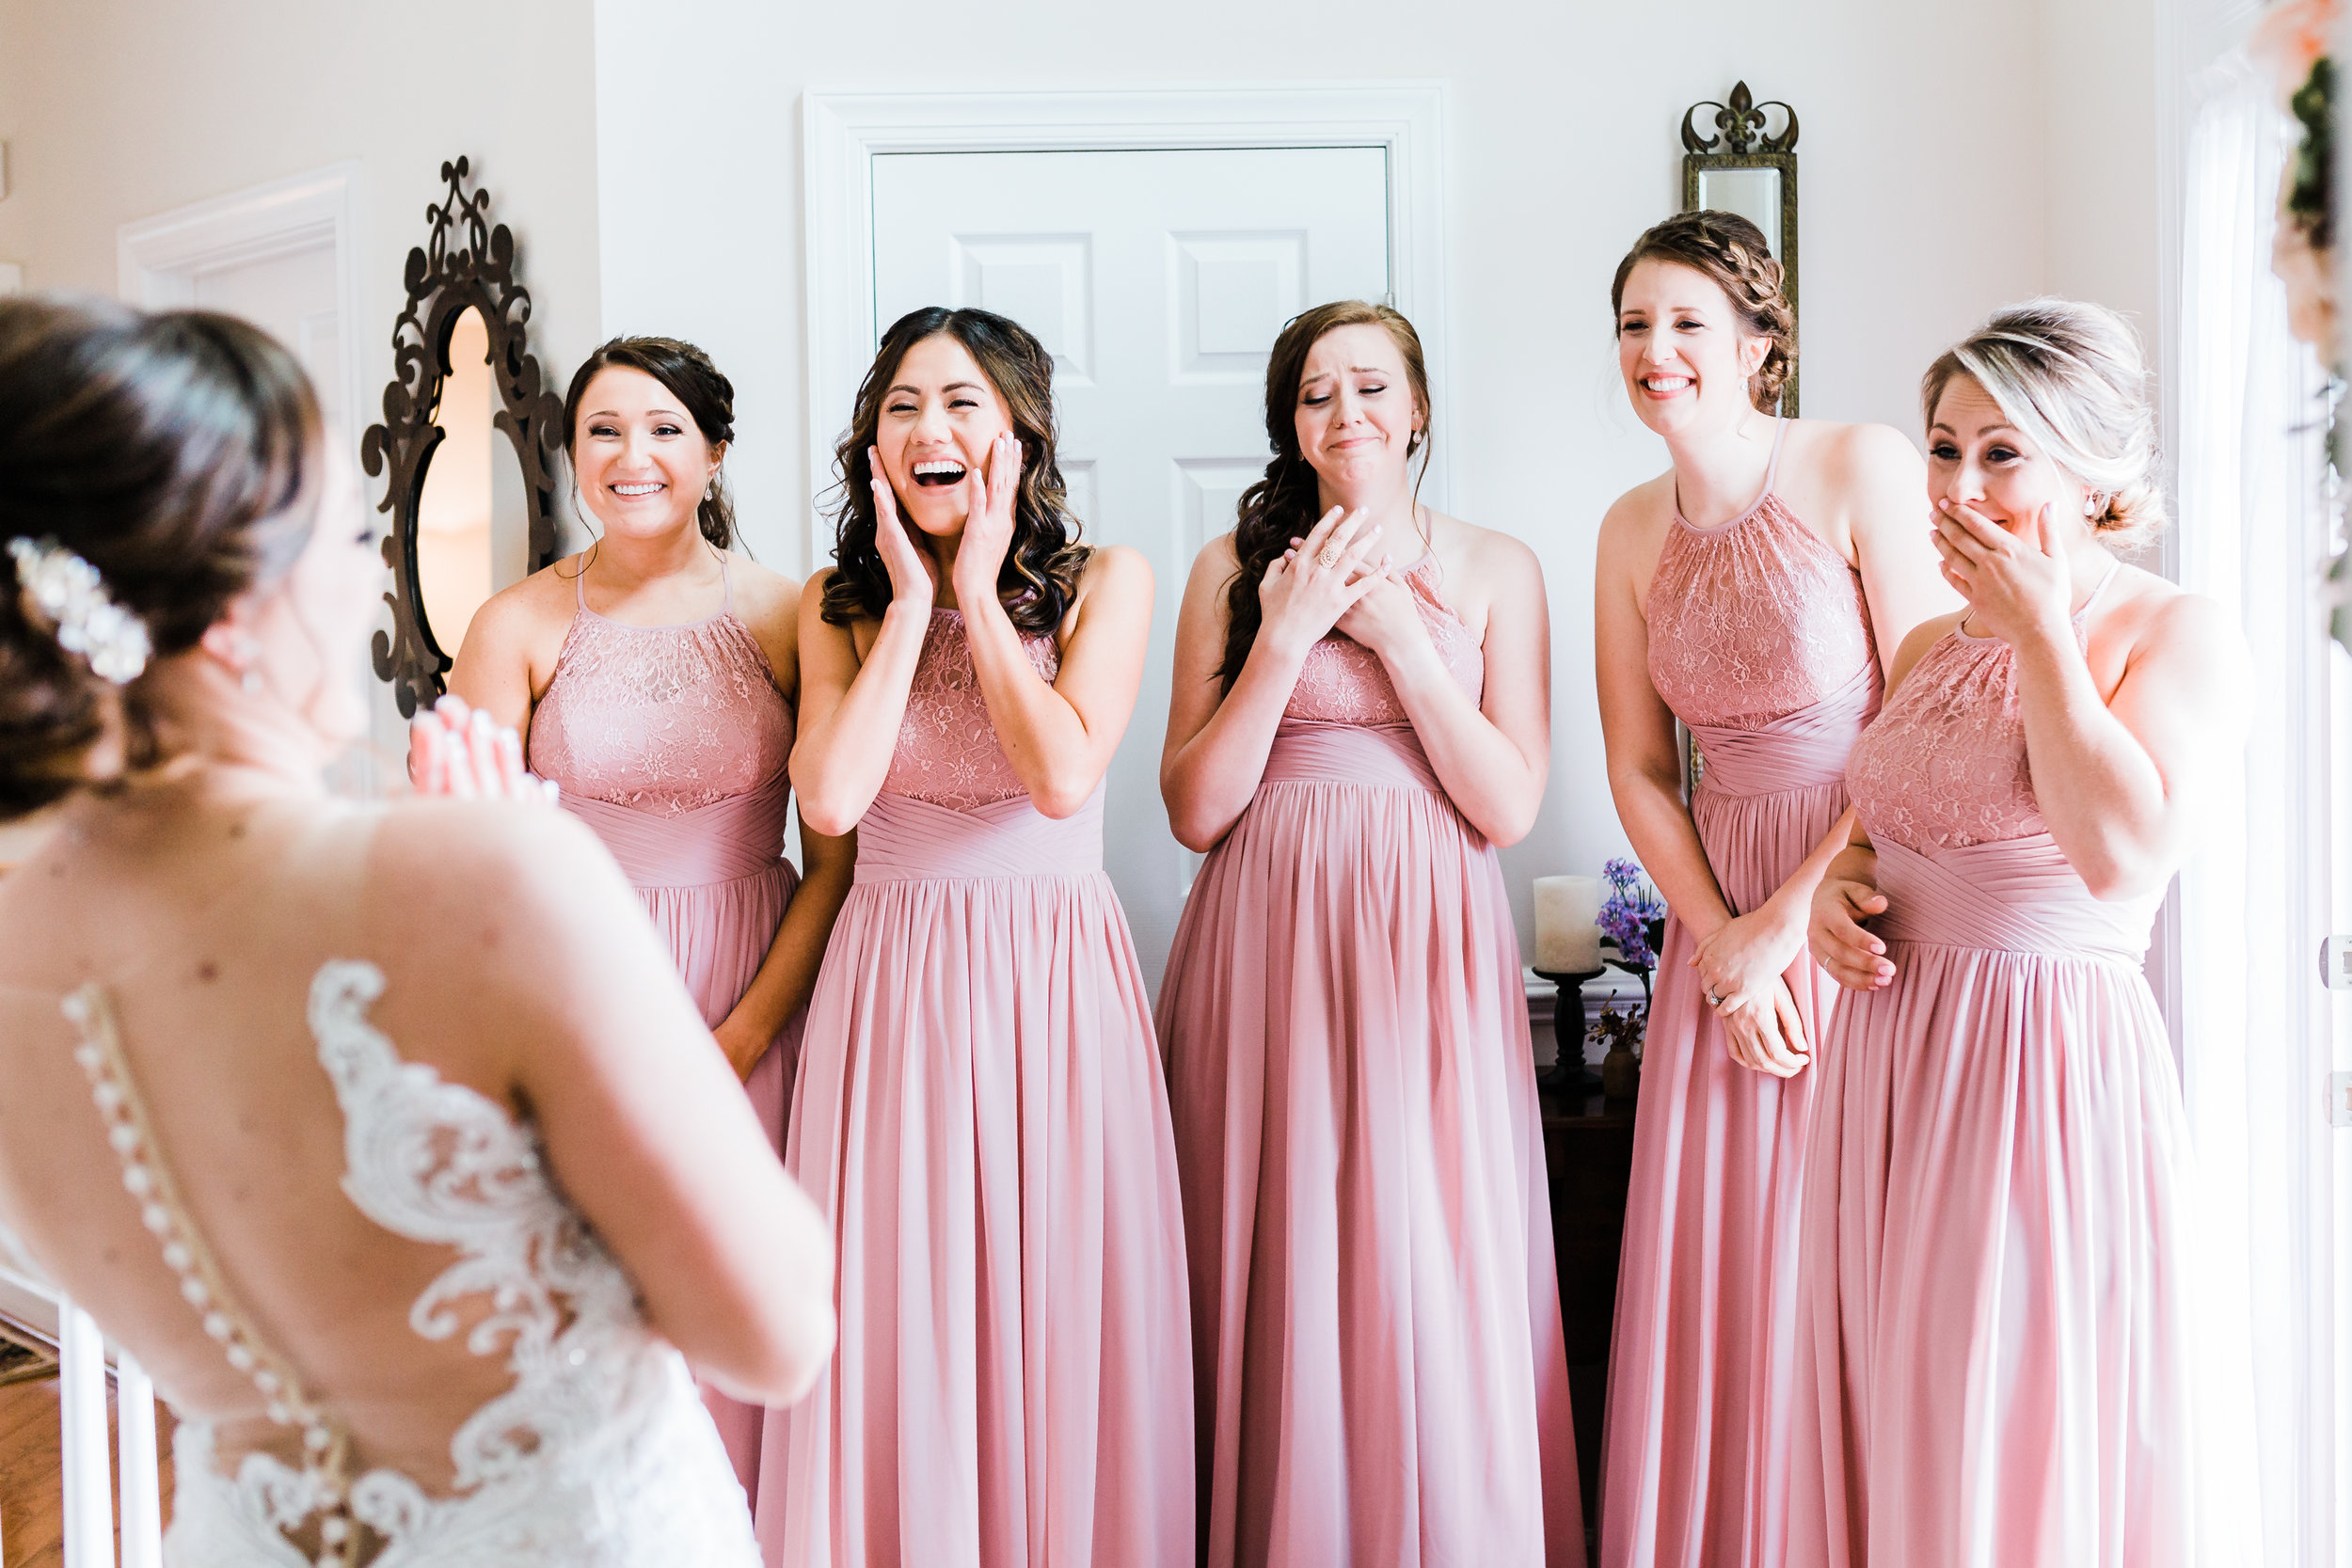 bridesmaids in awe over bride on her wedding day - md wedding photographer